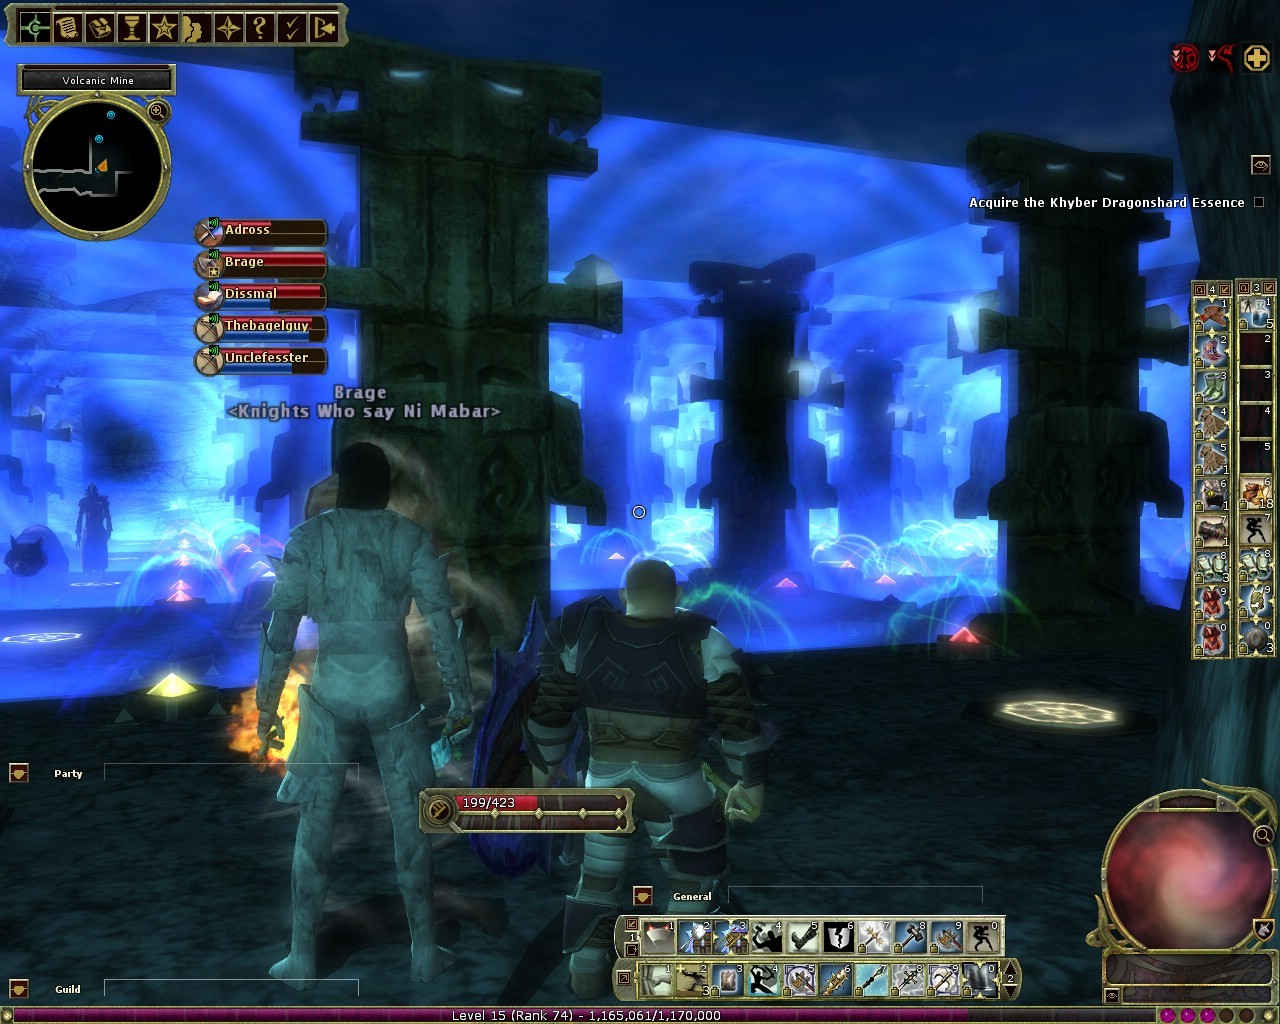 Dungeons & Dragons Online - Puzzles, puzzles, puzzles